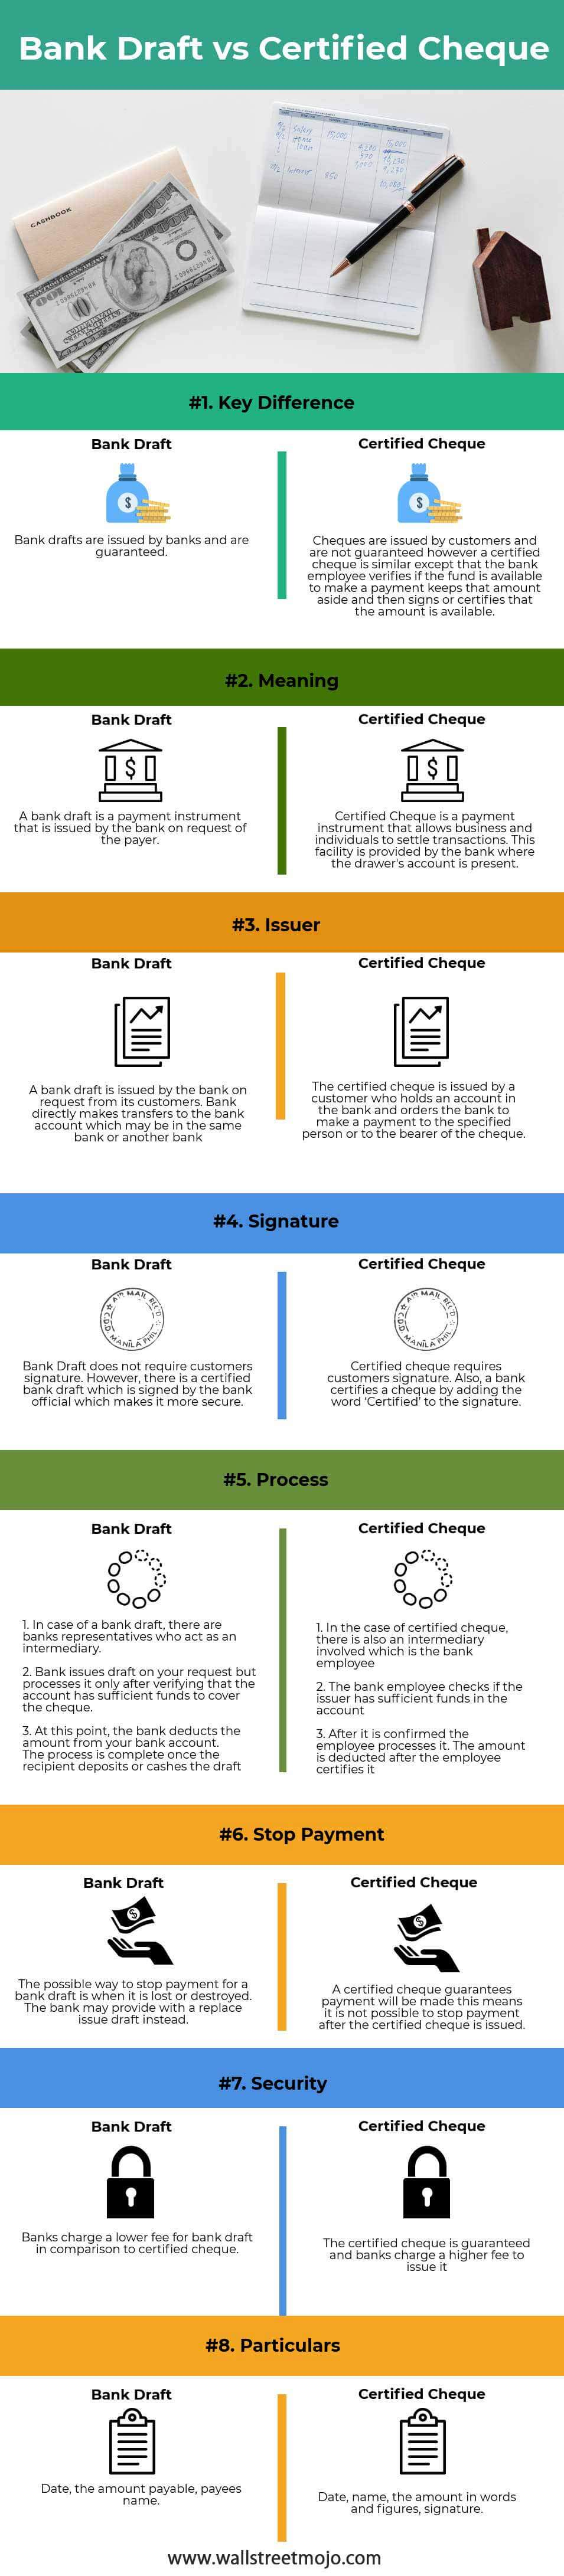 Bank-Draft-vs-Certified-Cheque-info